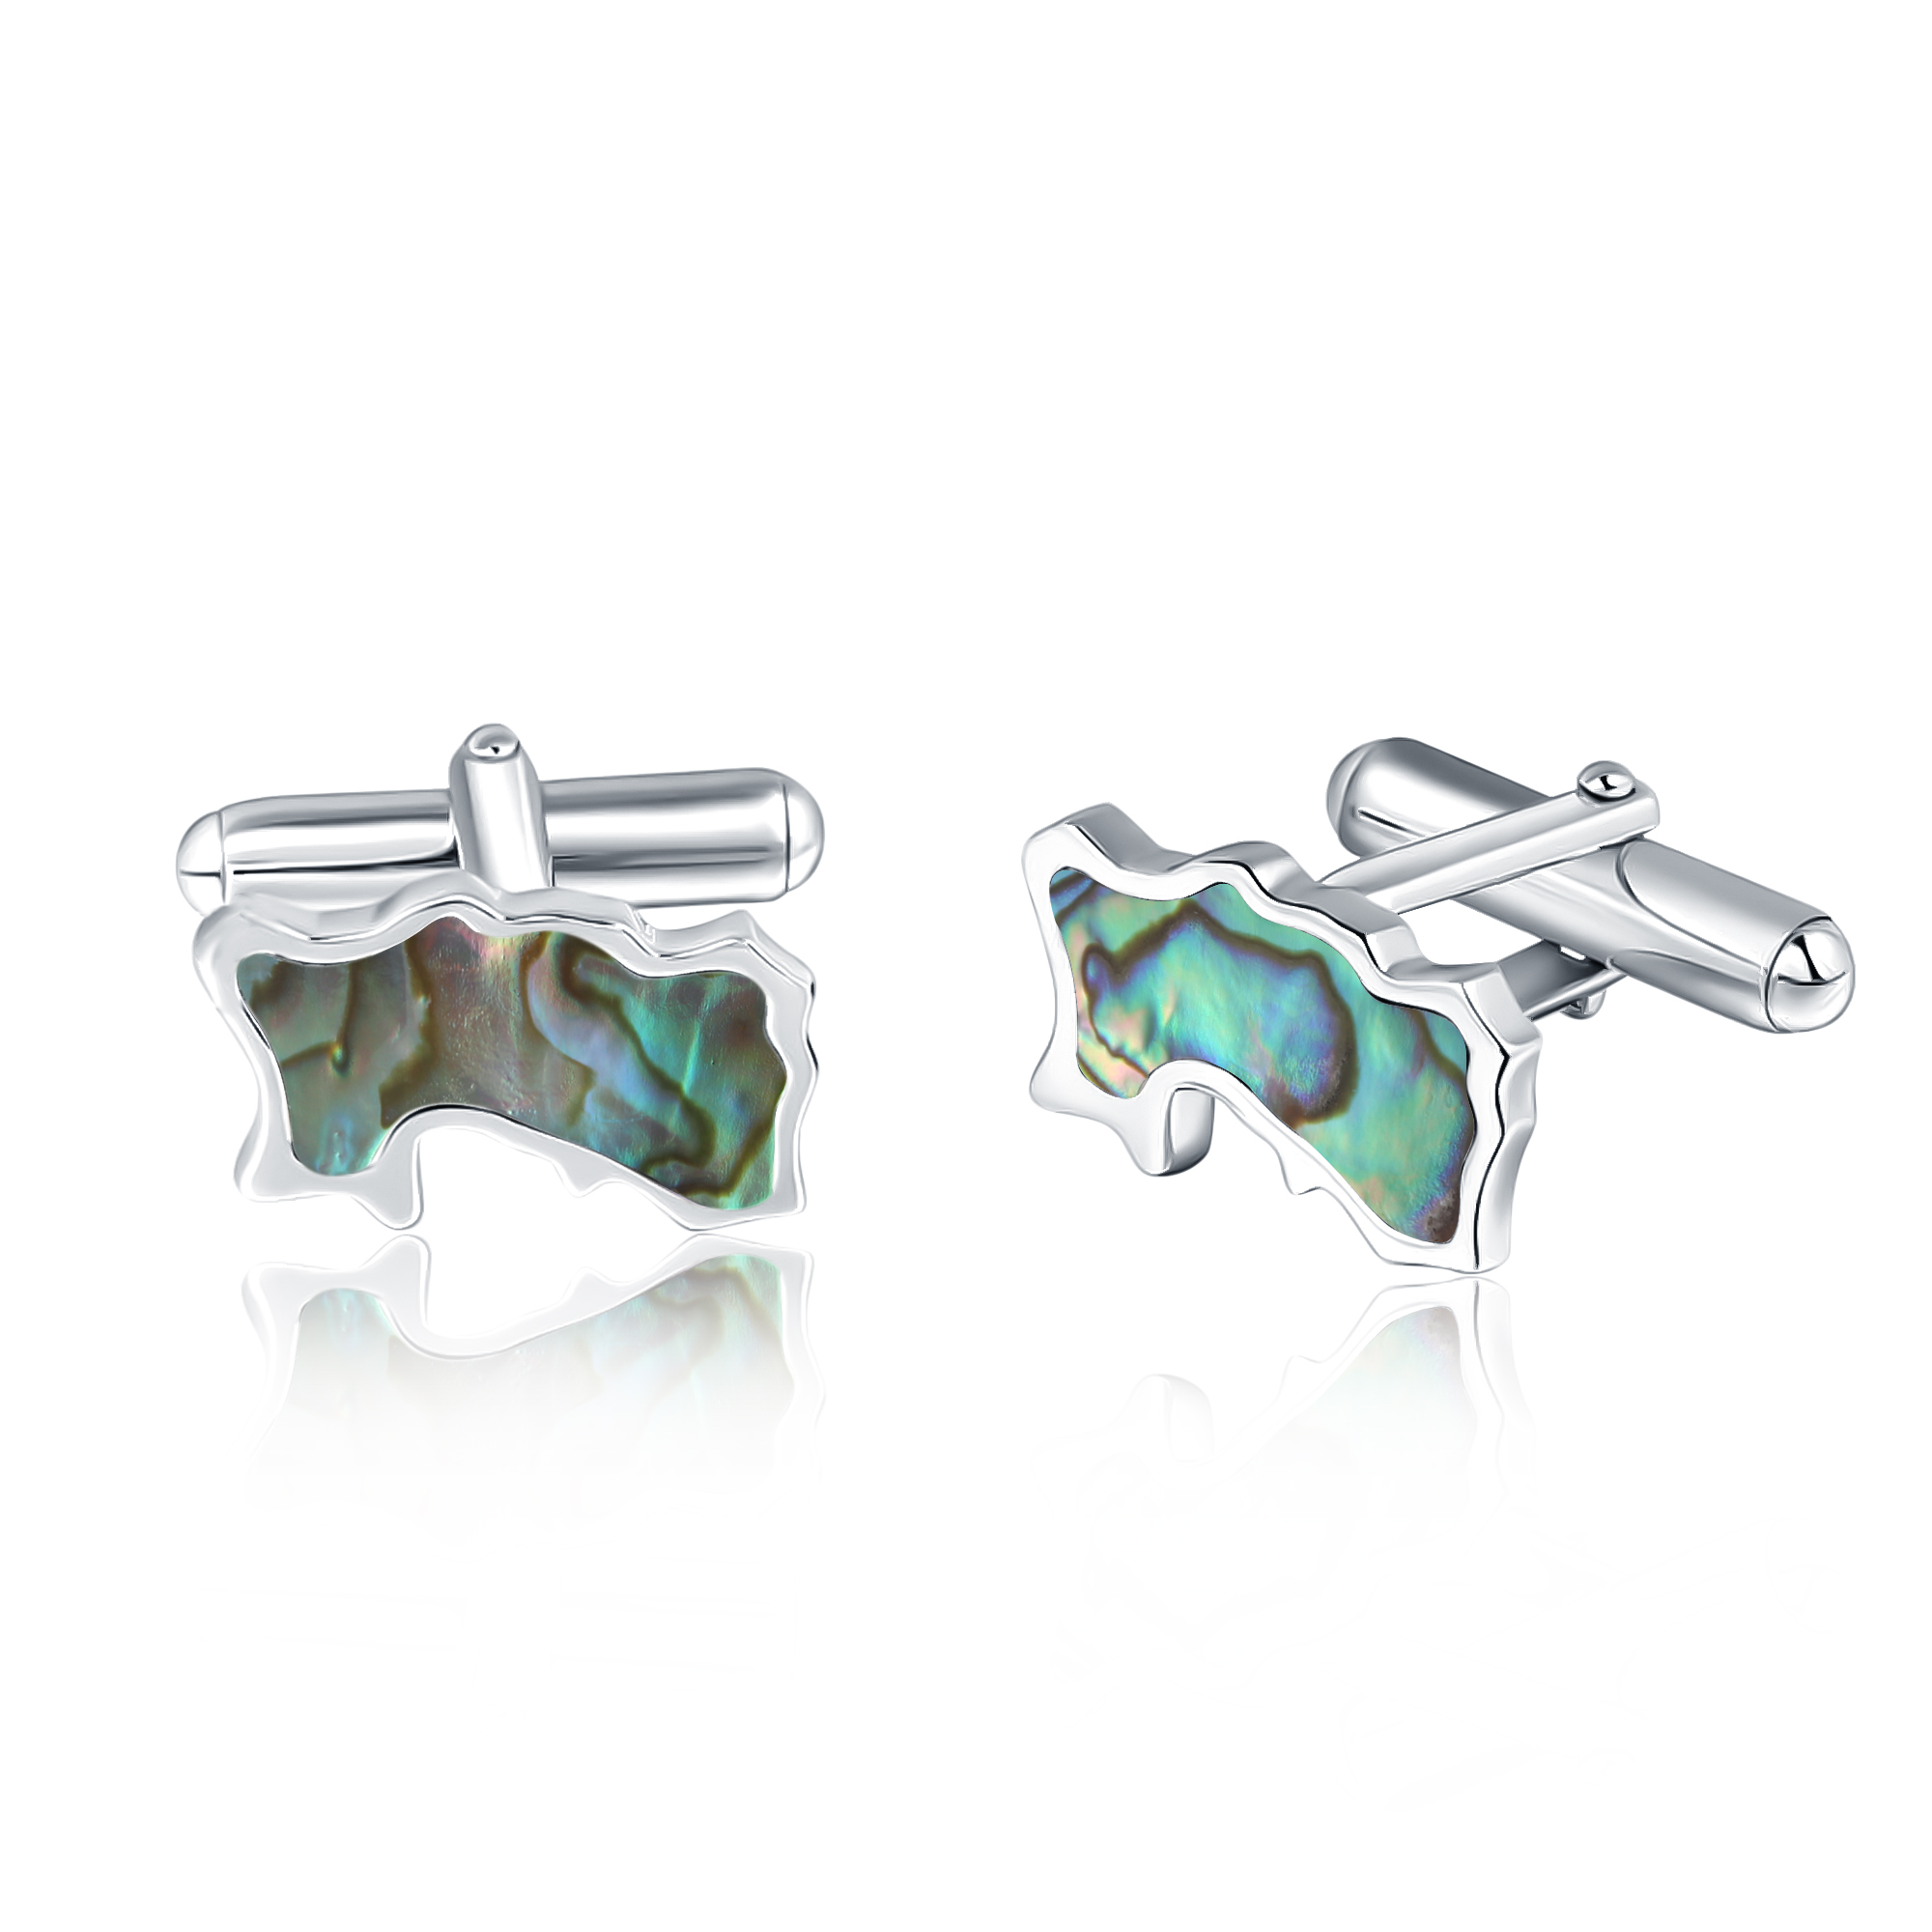 Jersey Map Abalone Cufflinks